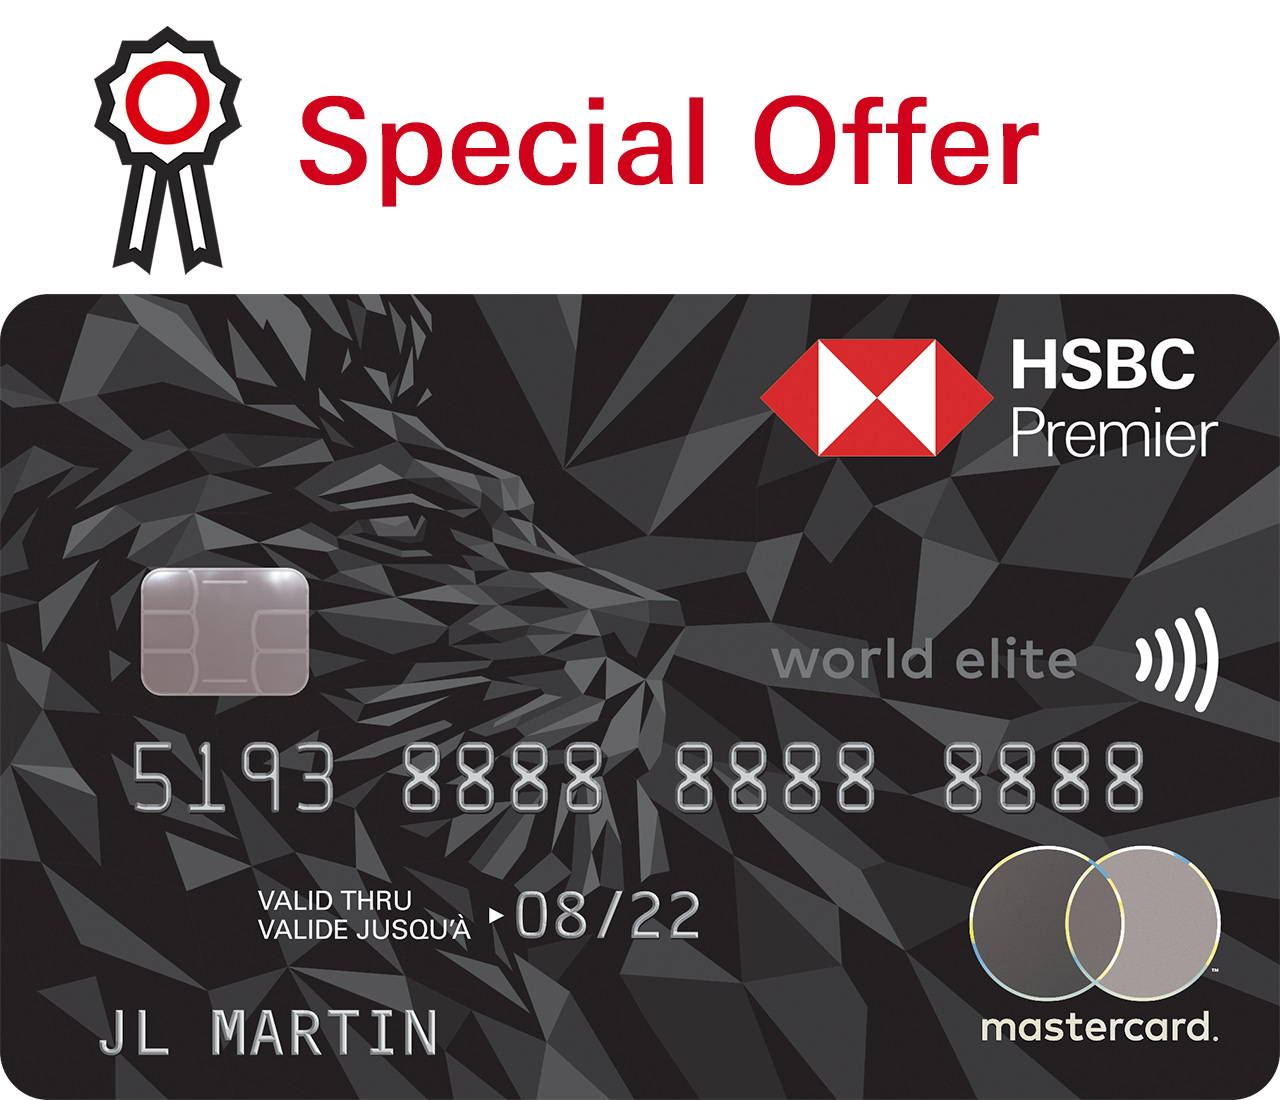 View full details to find out more about HSBC Premier World Elite Mastercard